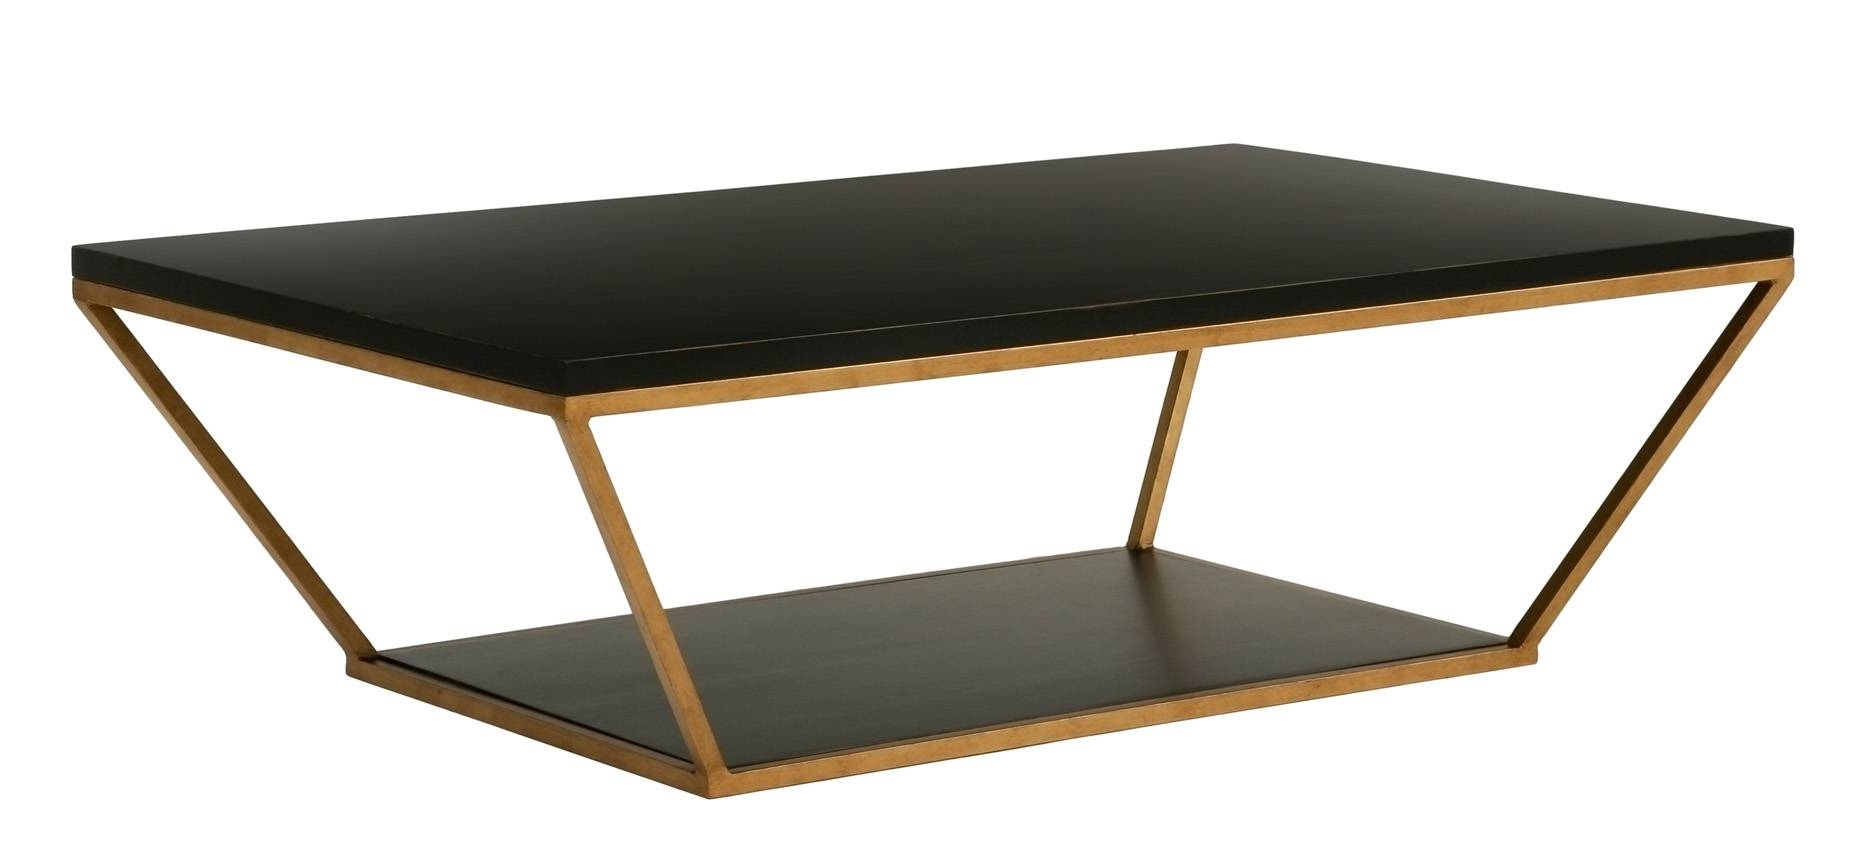 Coffee Tables pertaining to Rectangular Coffee Tables (Image 5 of 15)